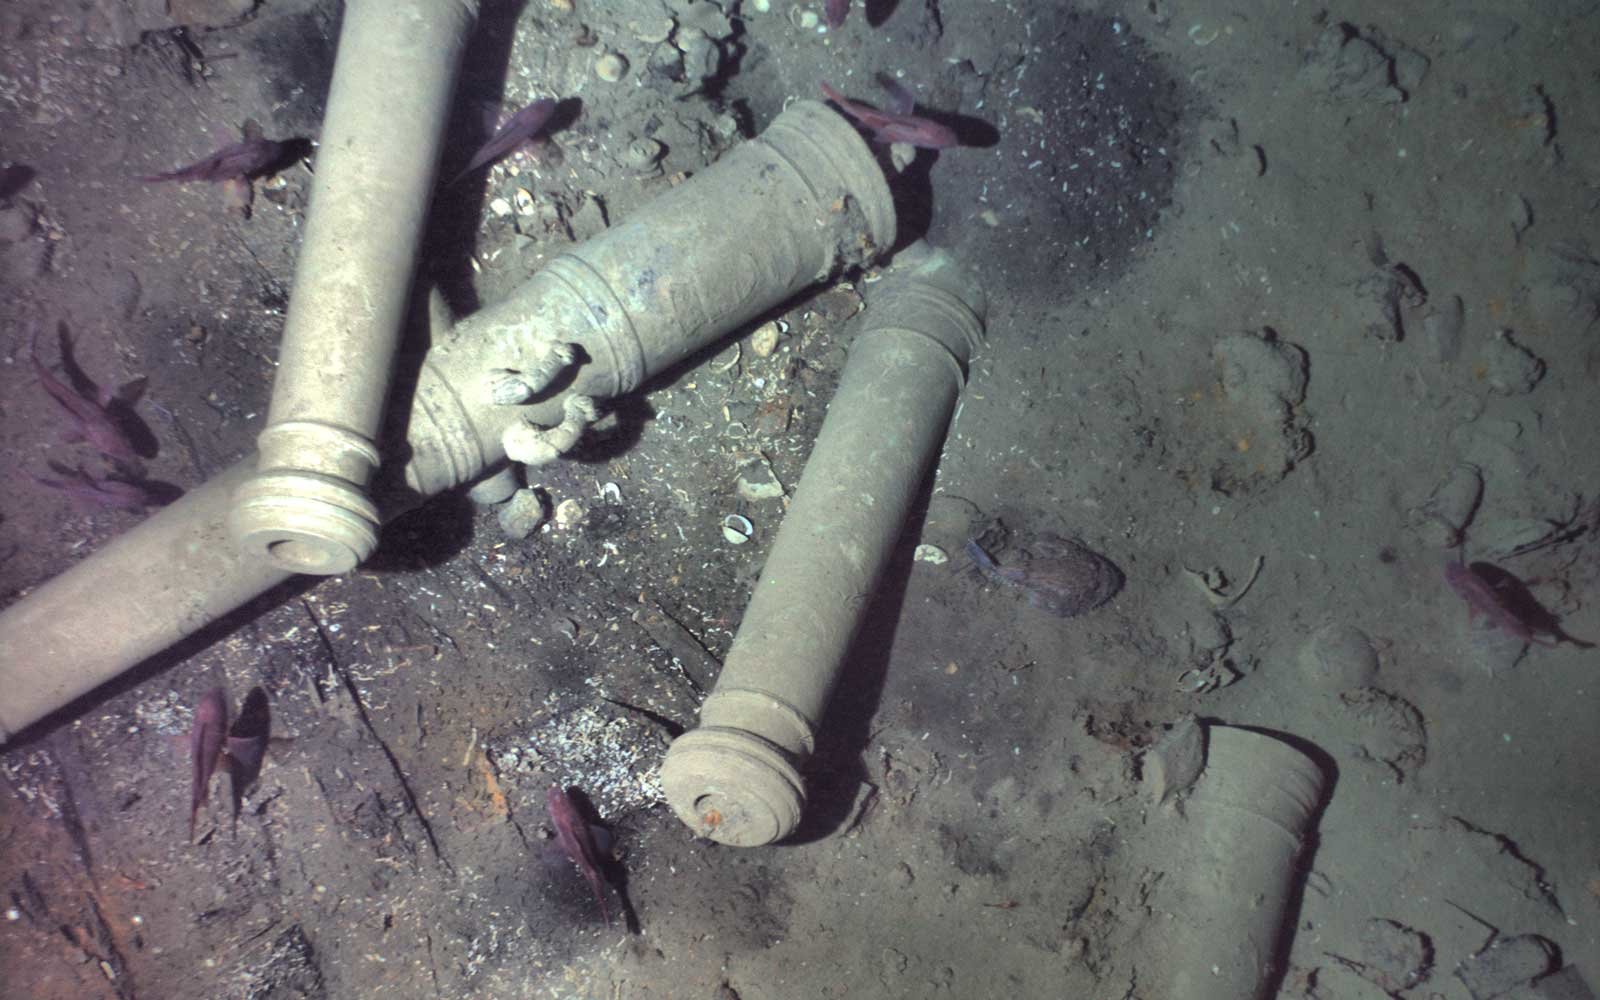 Cannon pile from San Jose Shipwreck in Colombia